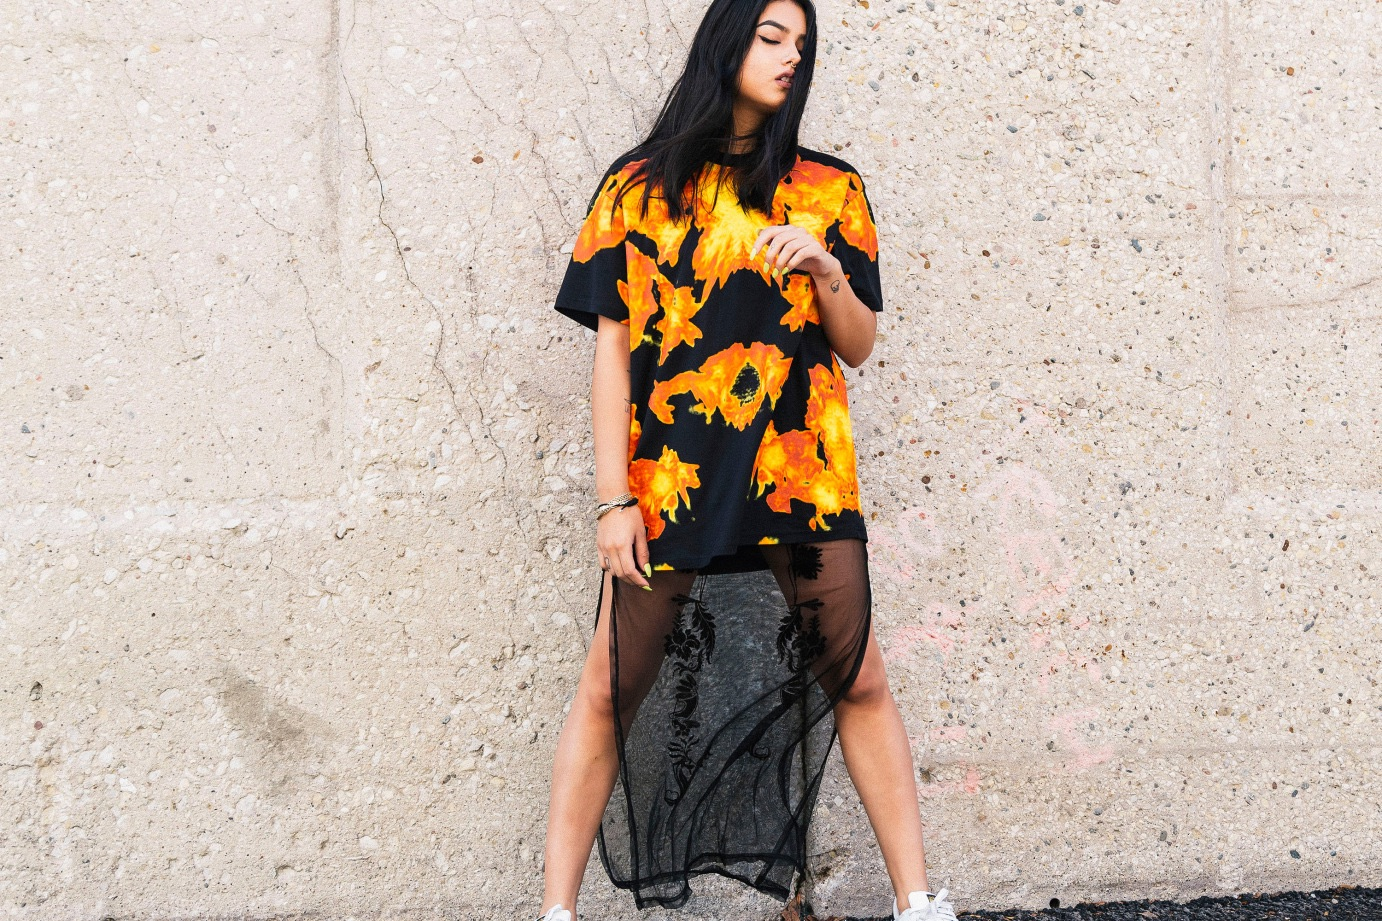 Rsvp gallery givenchy editorial